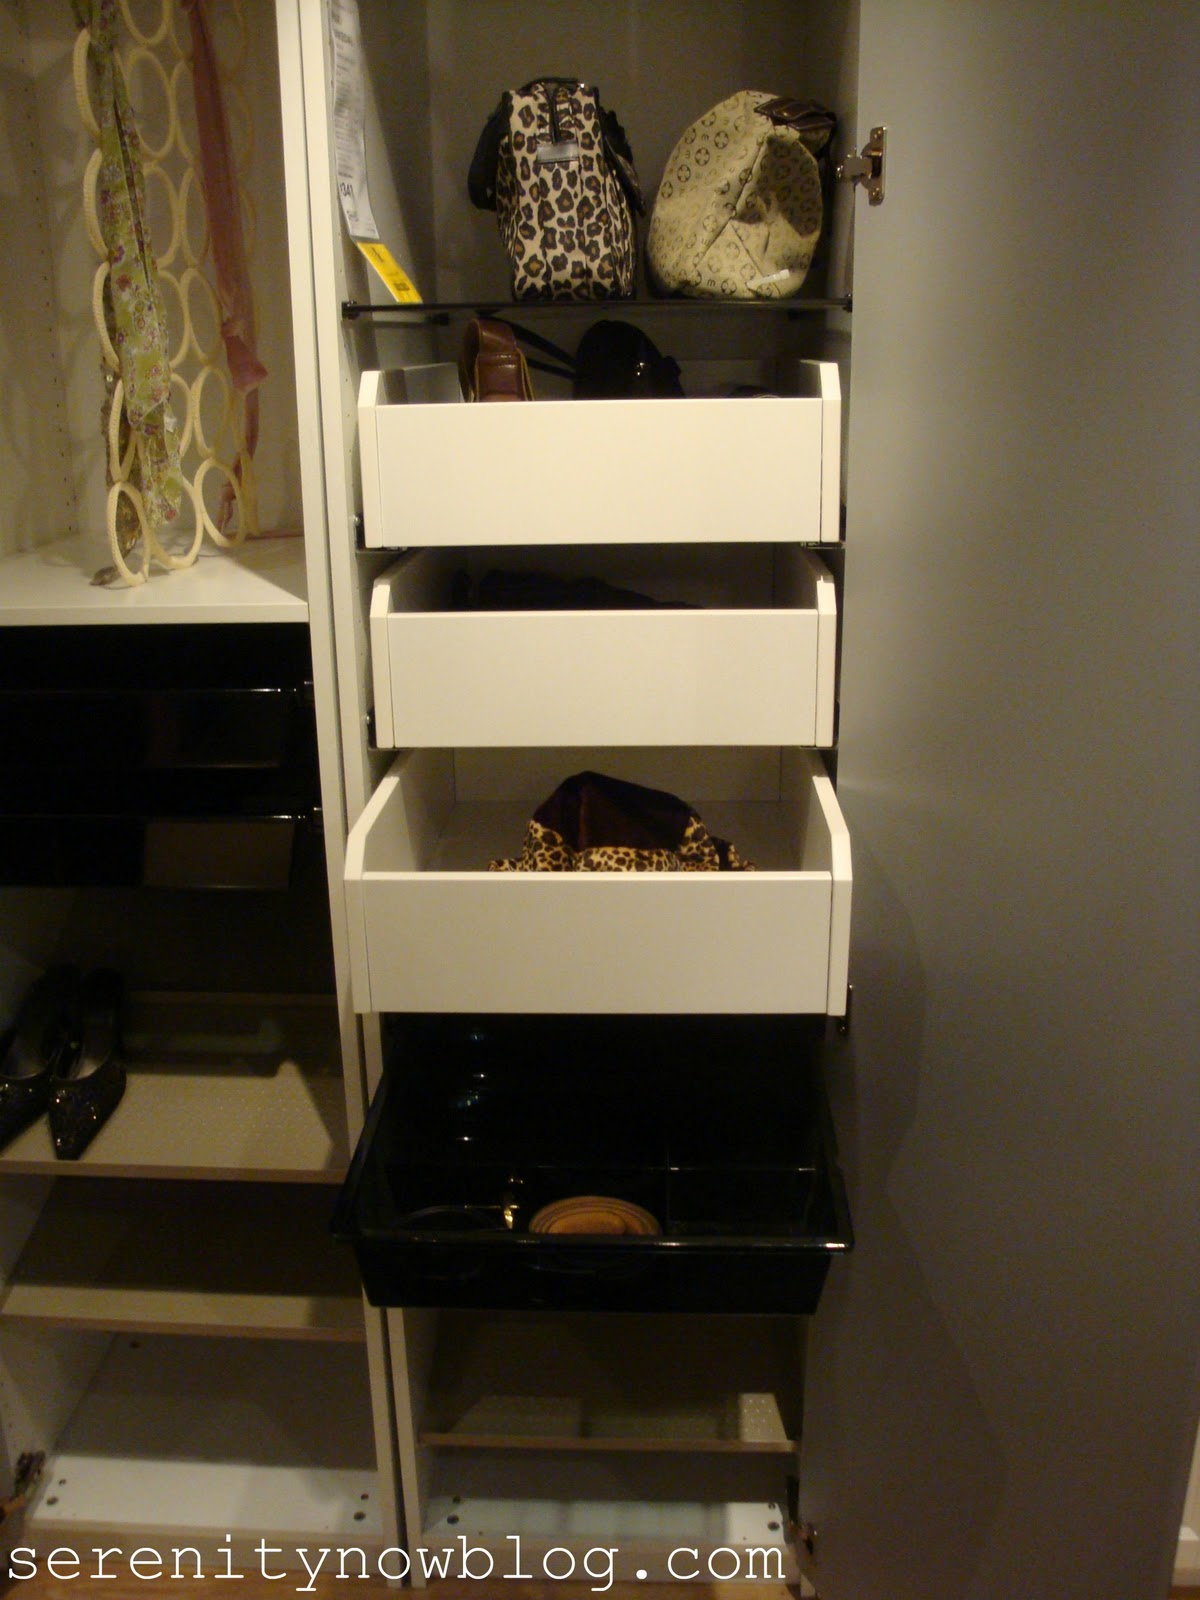 remarkable closet office | Serenity Now: Home Organizing Ideas-from My IKEA Shopping